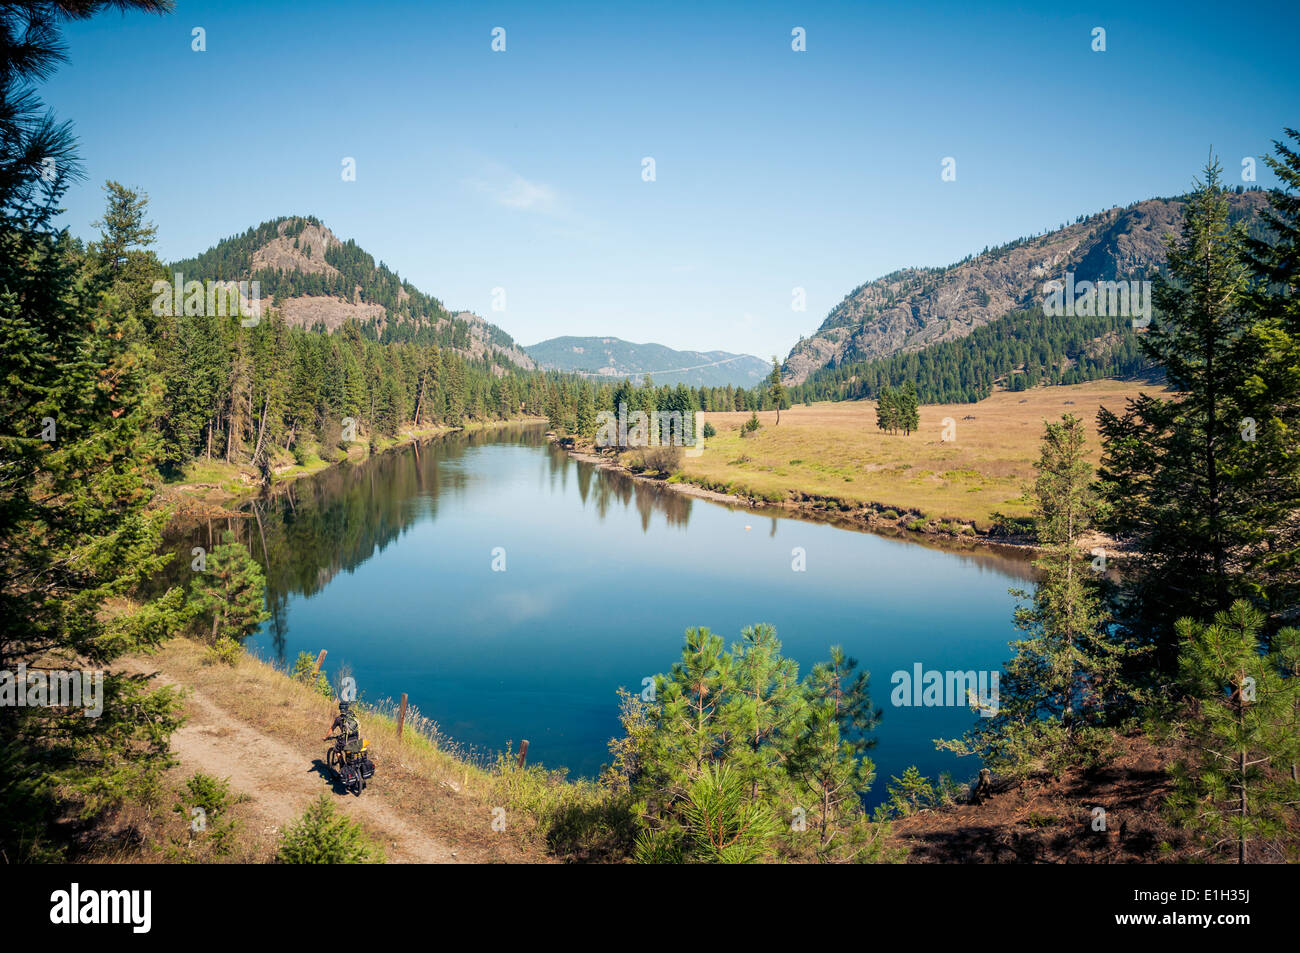 Male cyclist in Kettle Valley Rail-Trail/Kettle Valley Railway/KVR Trail next the Kettle Valley River, British Columbia, Canada - Stock Image